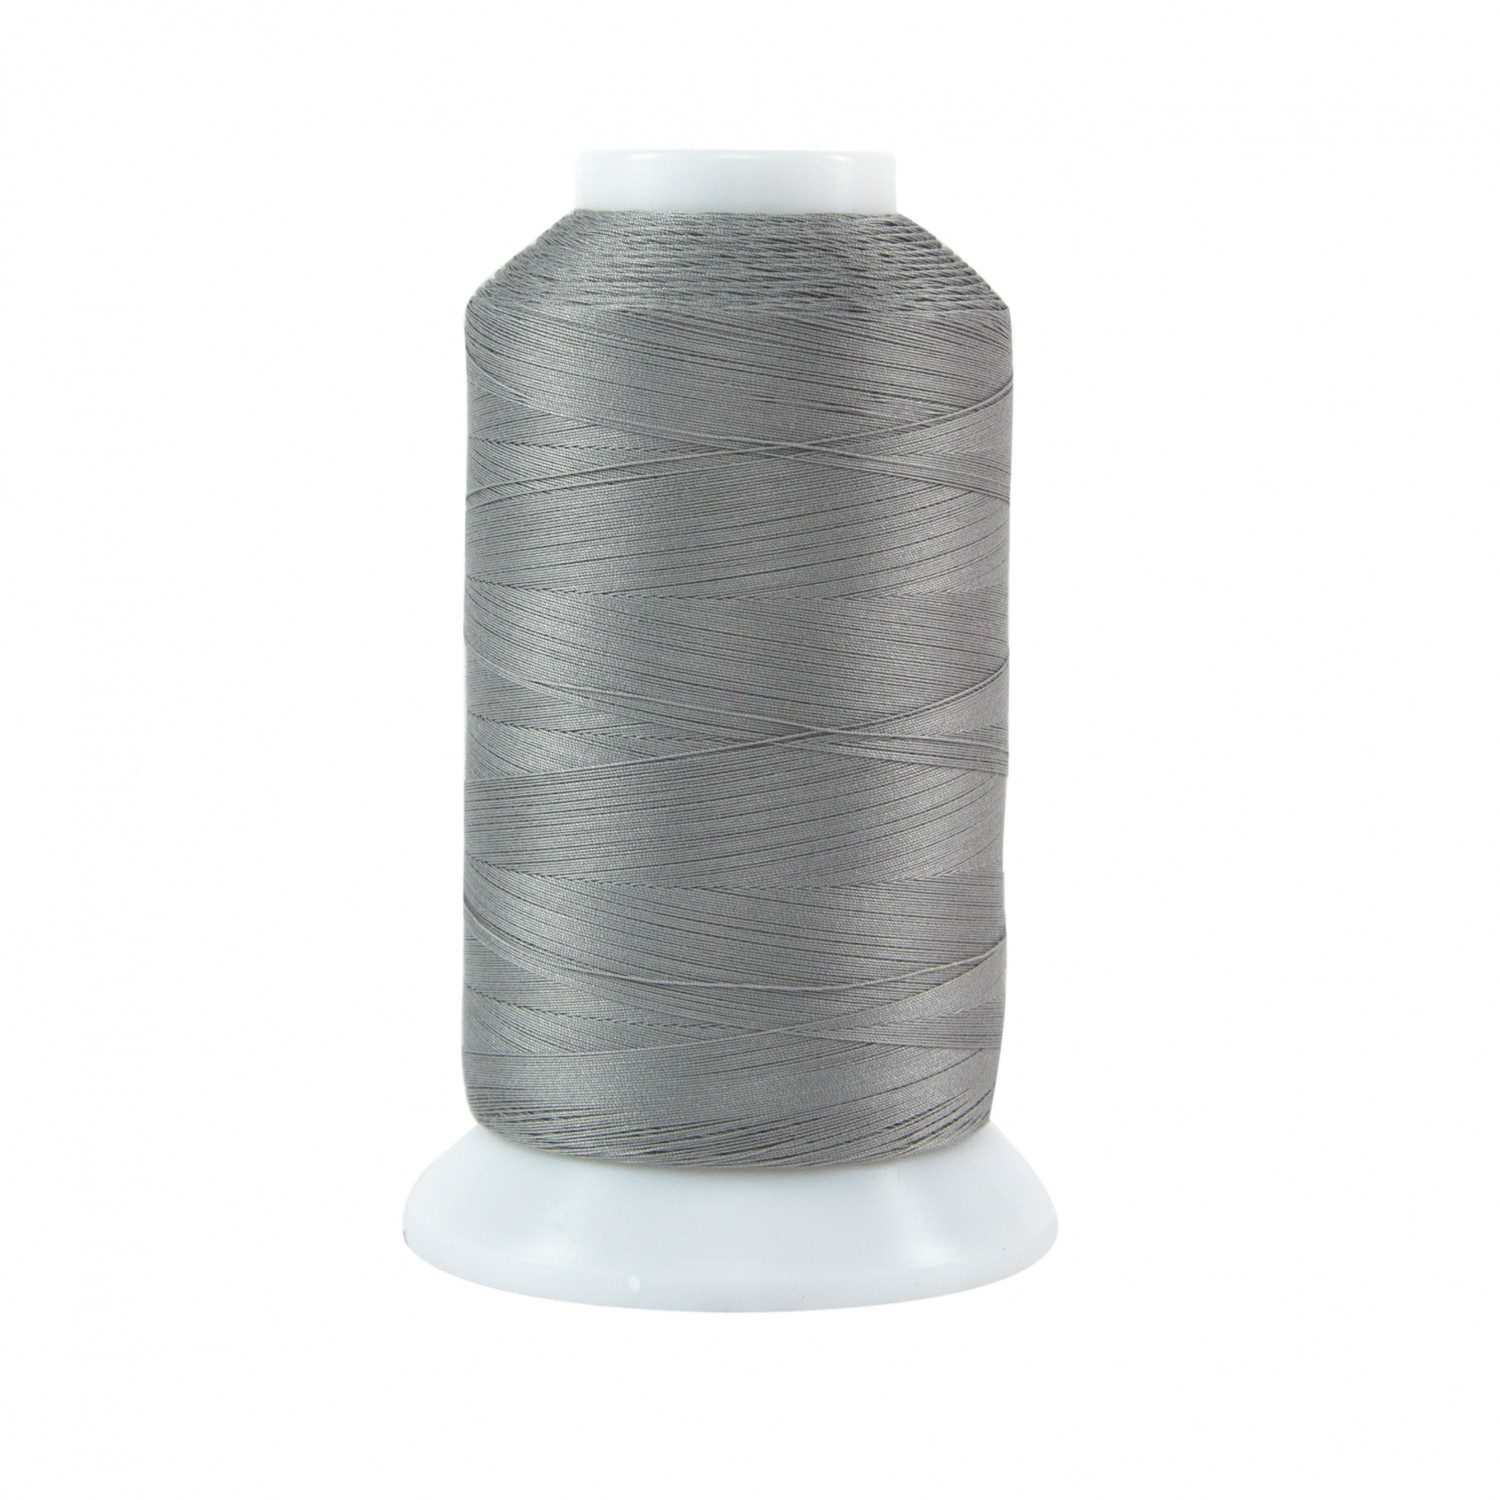 MaterPiece-Greystone Certified Egyptian Cotton Thread